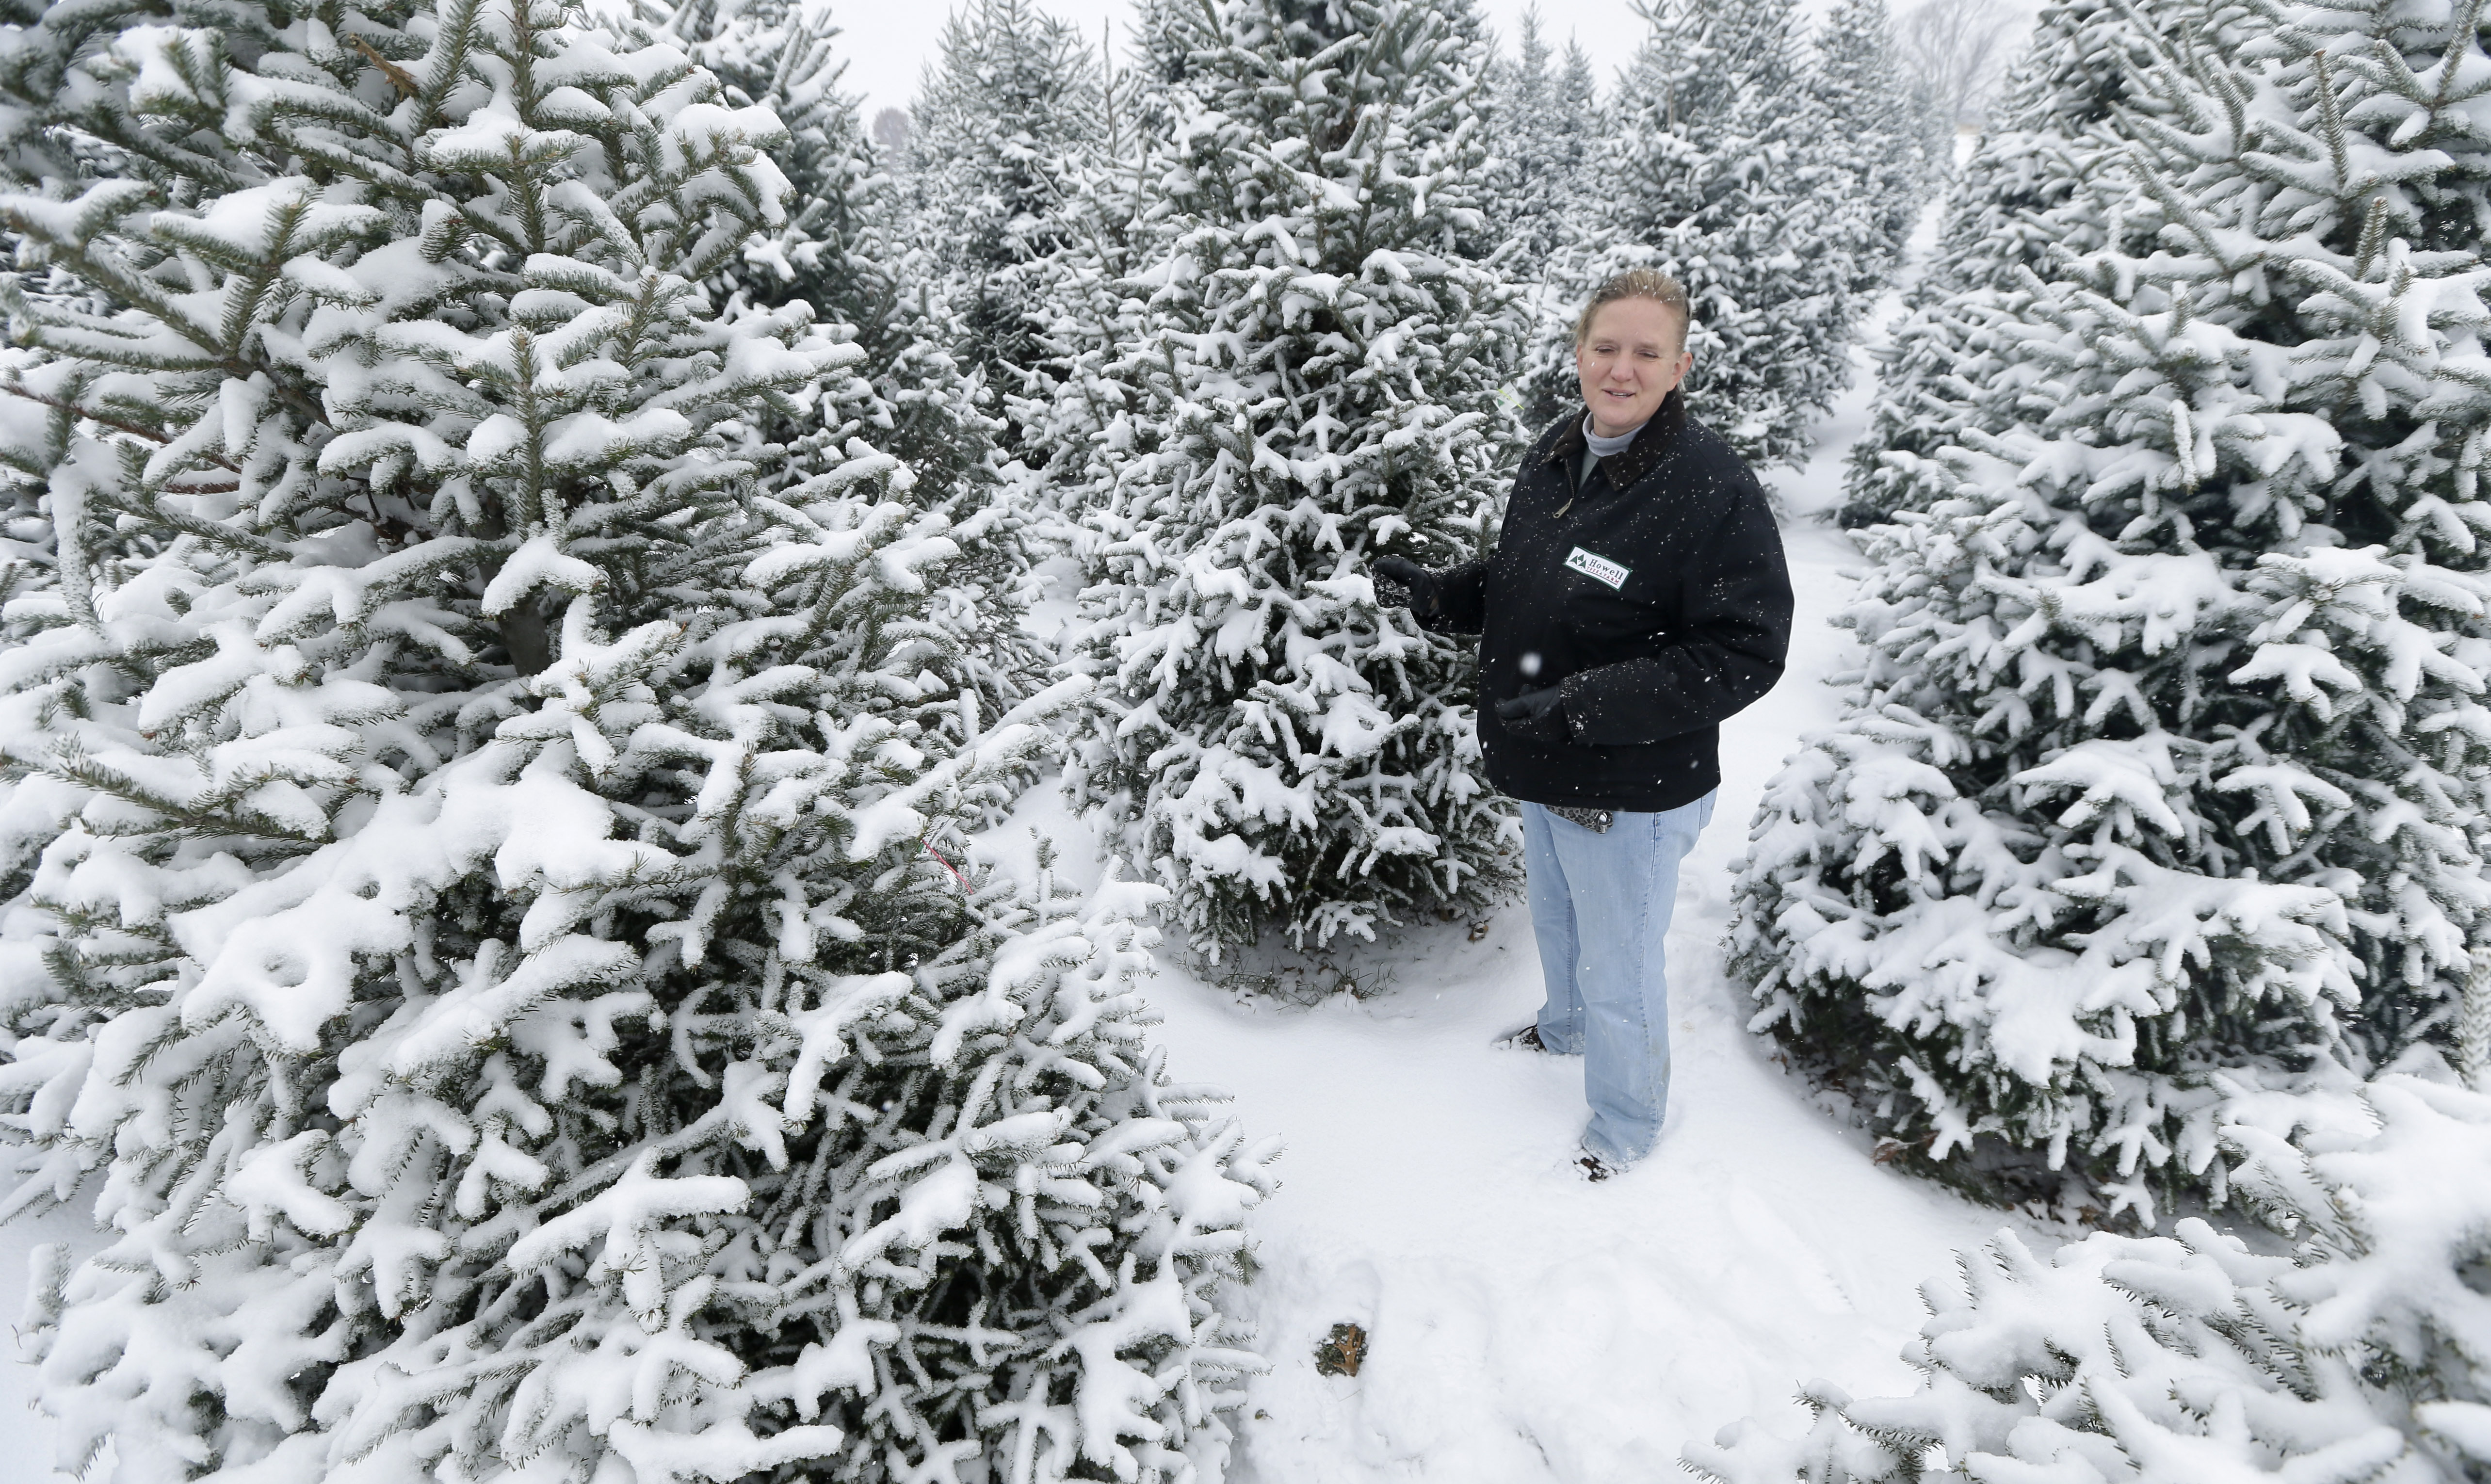 Growers grateful for higher Christmas tree prices - The Blade